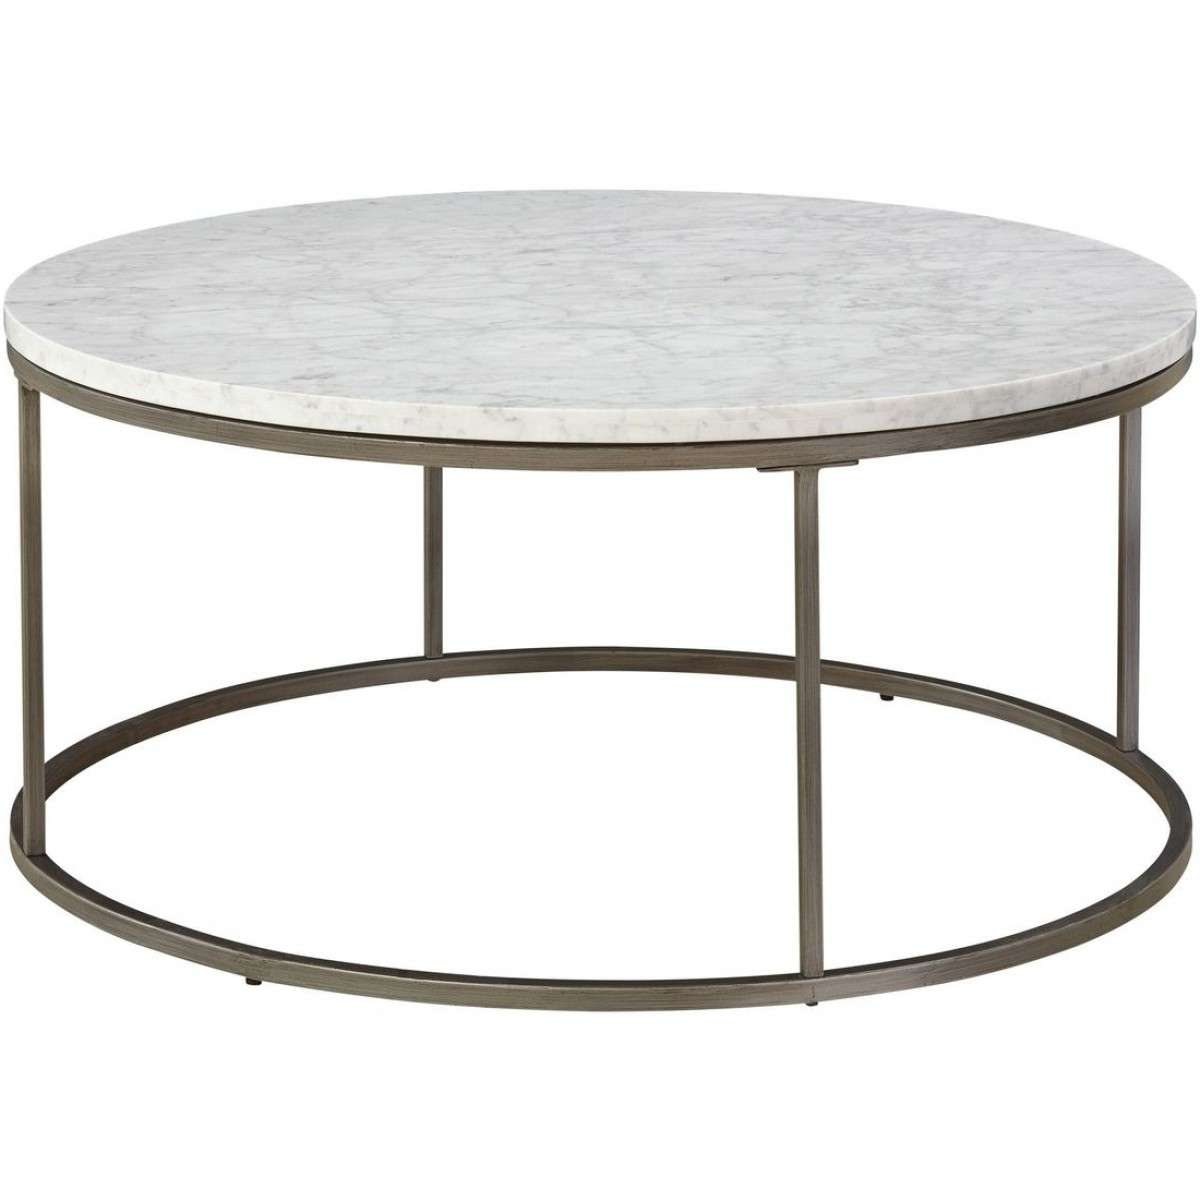 Widely Used Marble Round Coffee Tables Within Alana Round Coffee Table With White Marble Top (View 13 of 20)